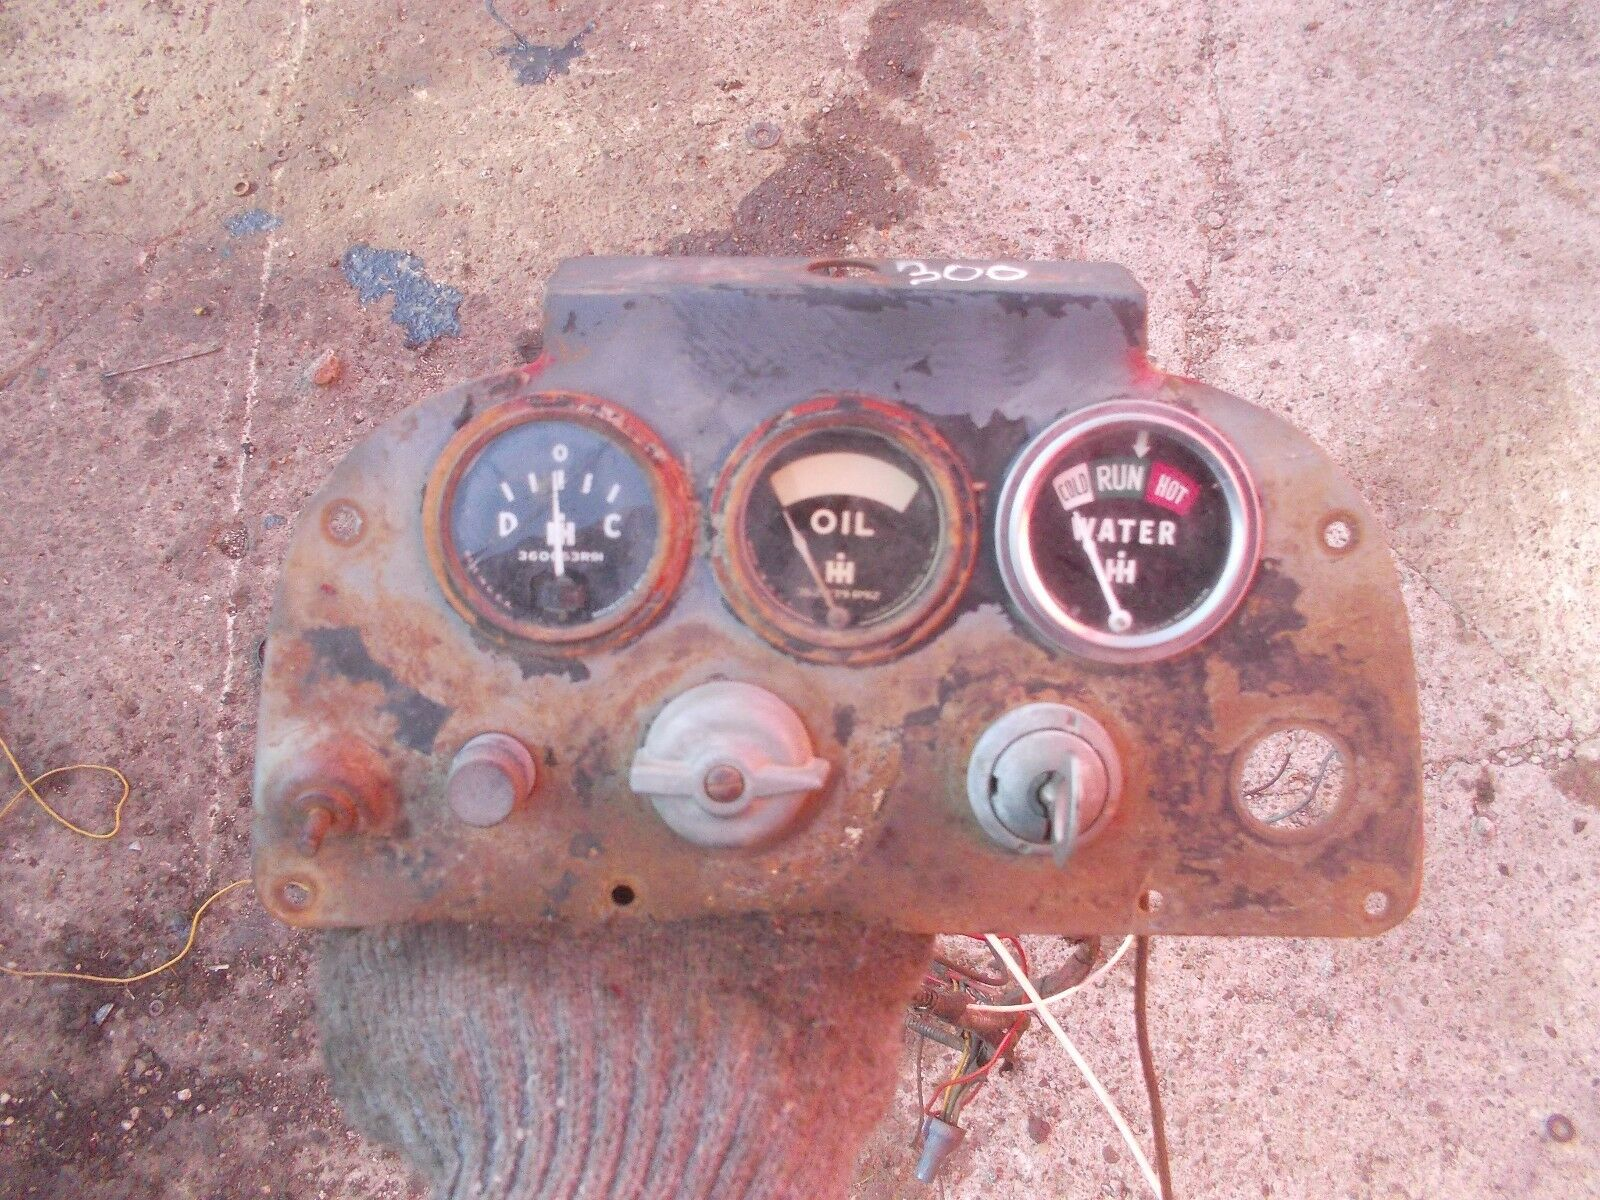 farmall 300 rc tractor dash panel w gauges &orig ignition key farmall super c farmall 300 rc tractor dash panel w gauges &orig ignition key & wiring harness 1 of 7only 1 available see more